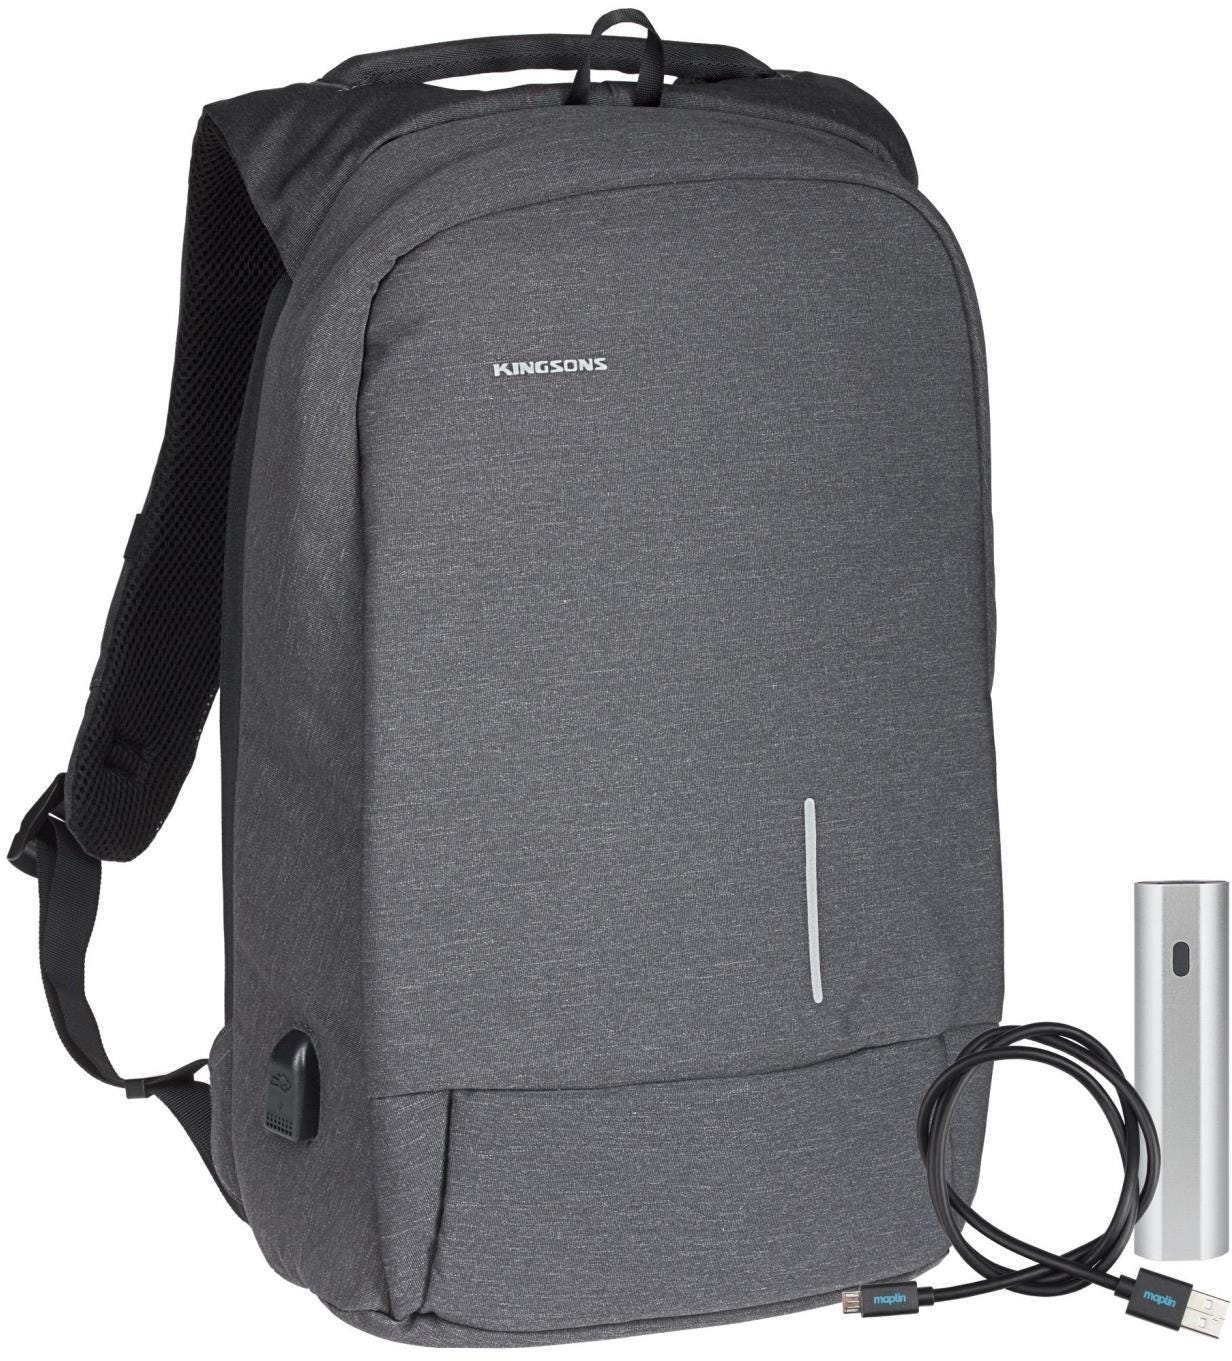 "Kingsons Smart Anti-Theft USB Series 15.6"" Laptop Backpack and Power Bank Bundle - Dark Grey"